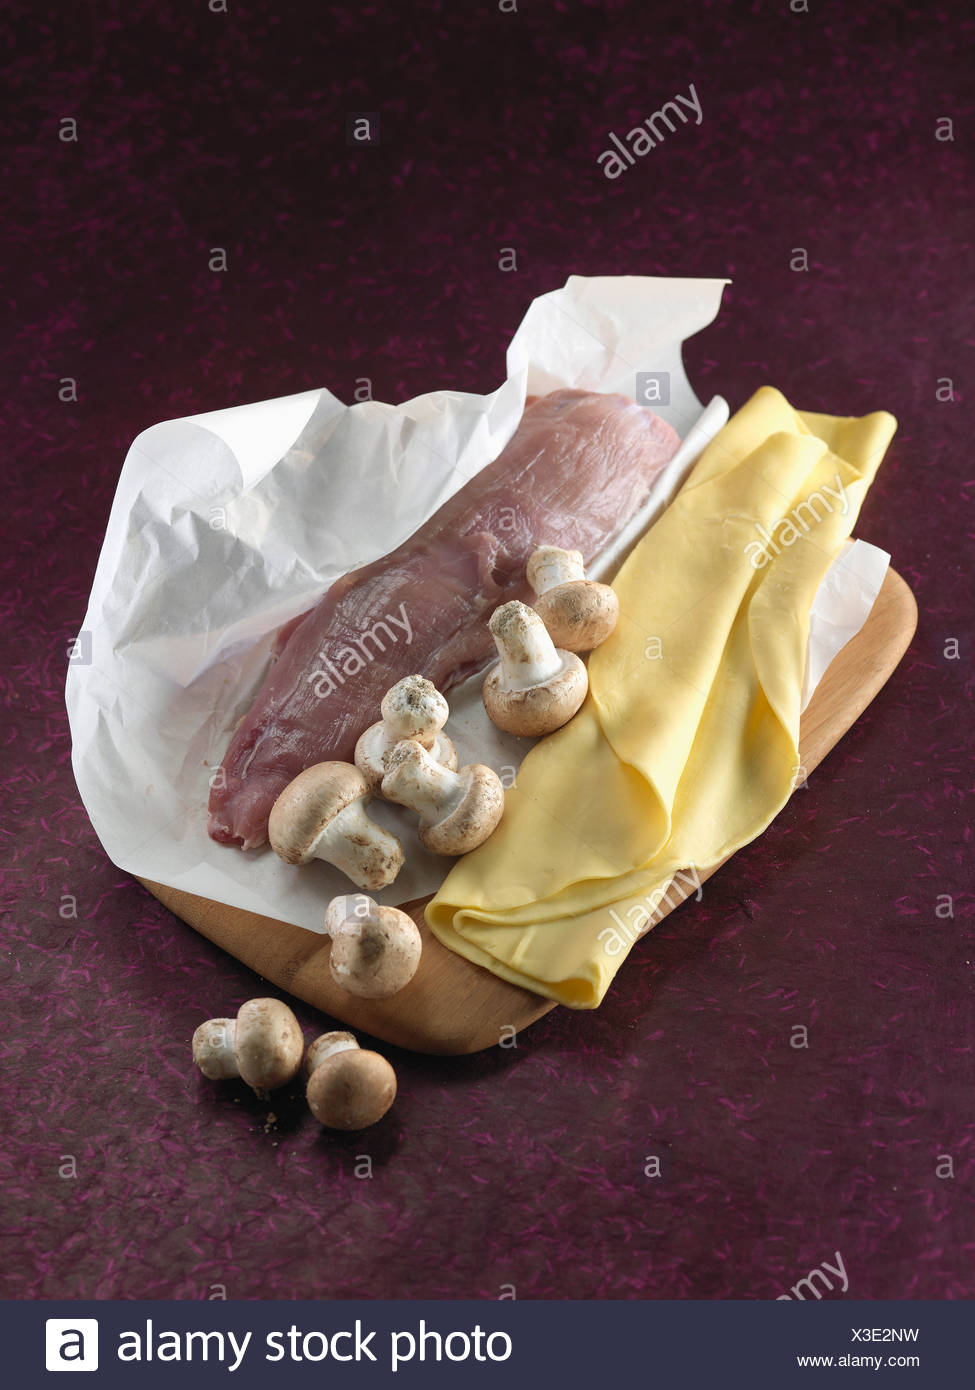 Pork fillet,uncooked flaky pastry and button mushrooms - Stock Image